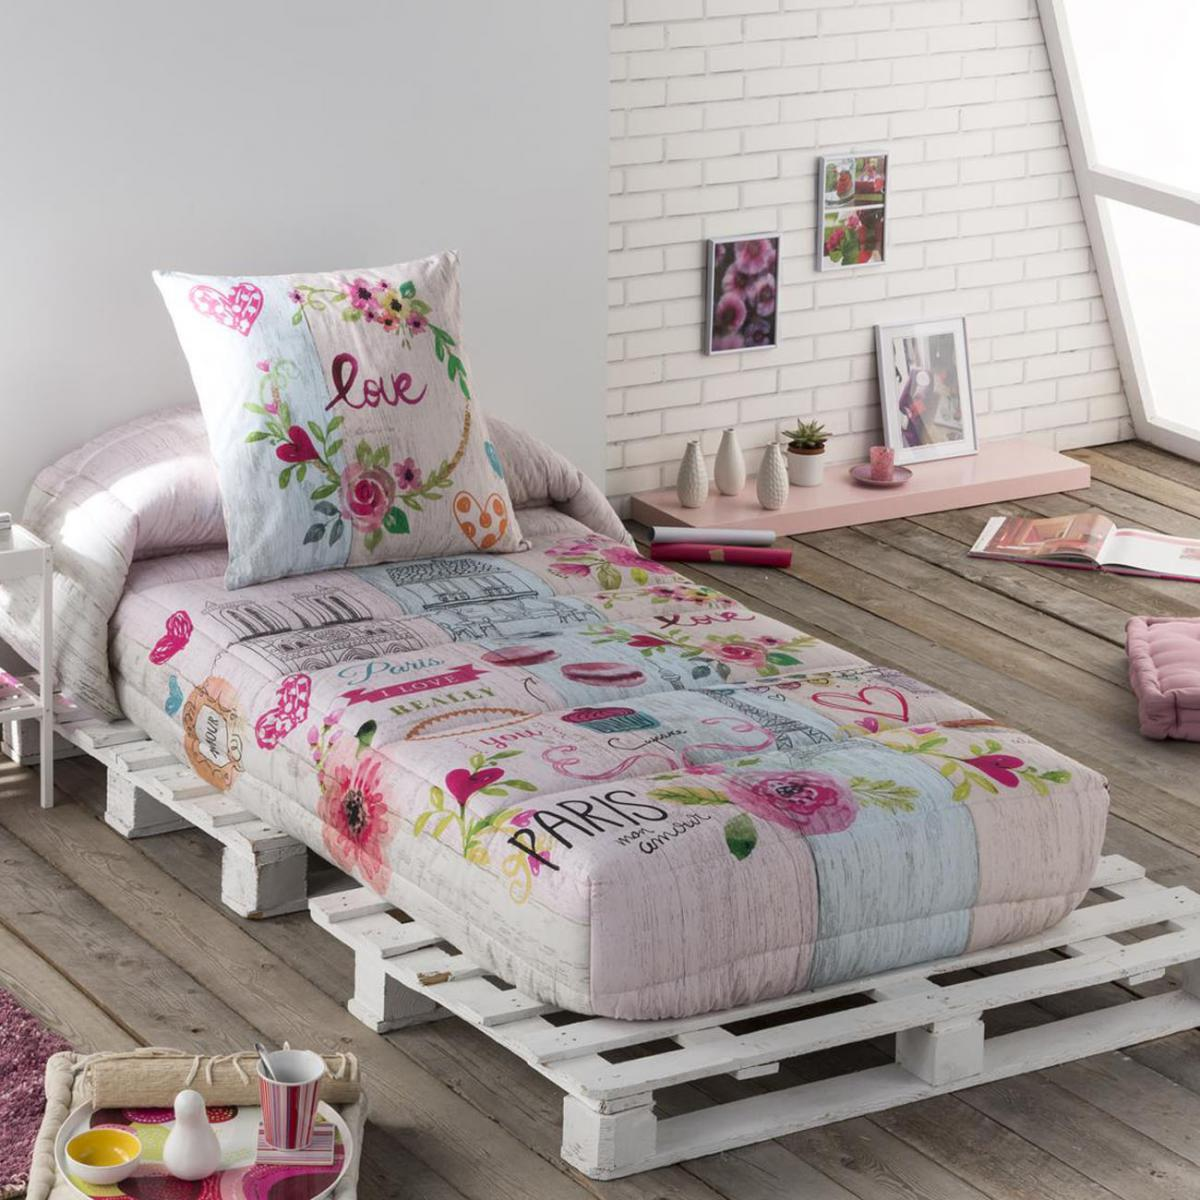 Edred n ajustable cookie jvr cama - Nordicos modernos ...